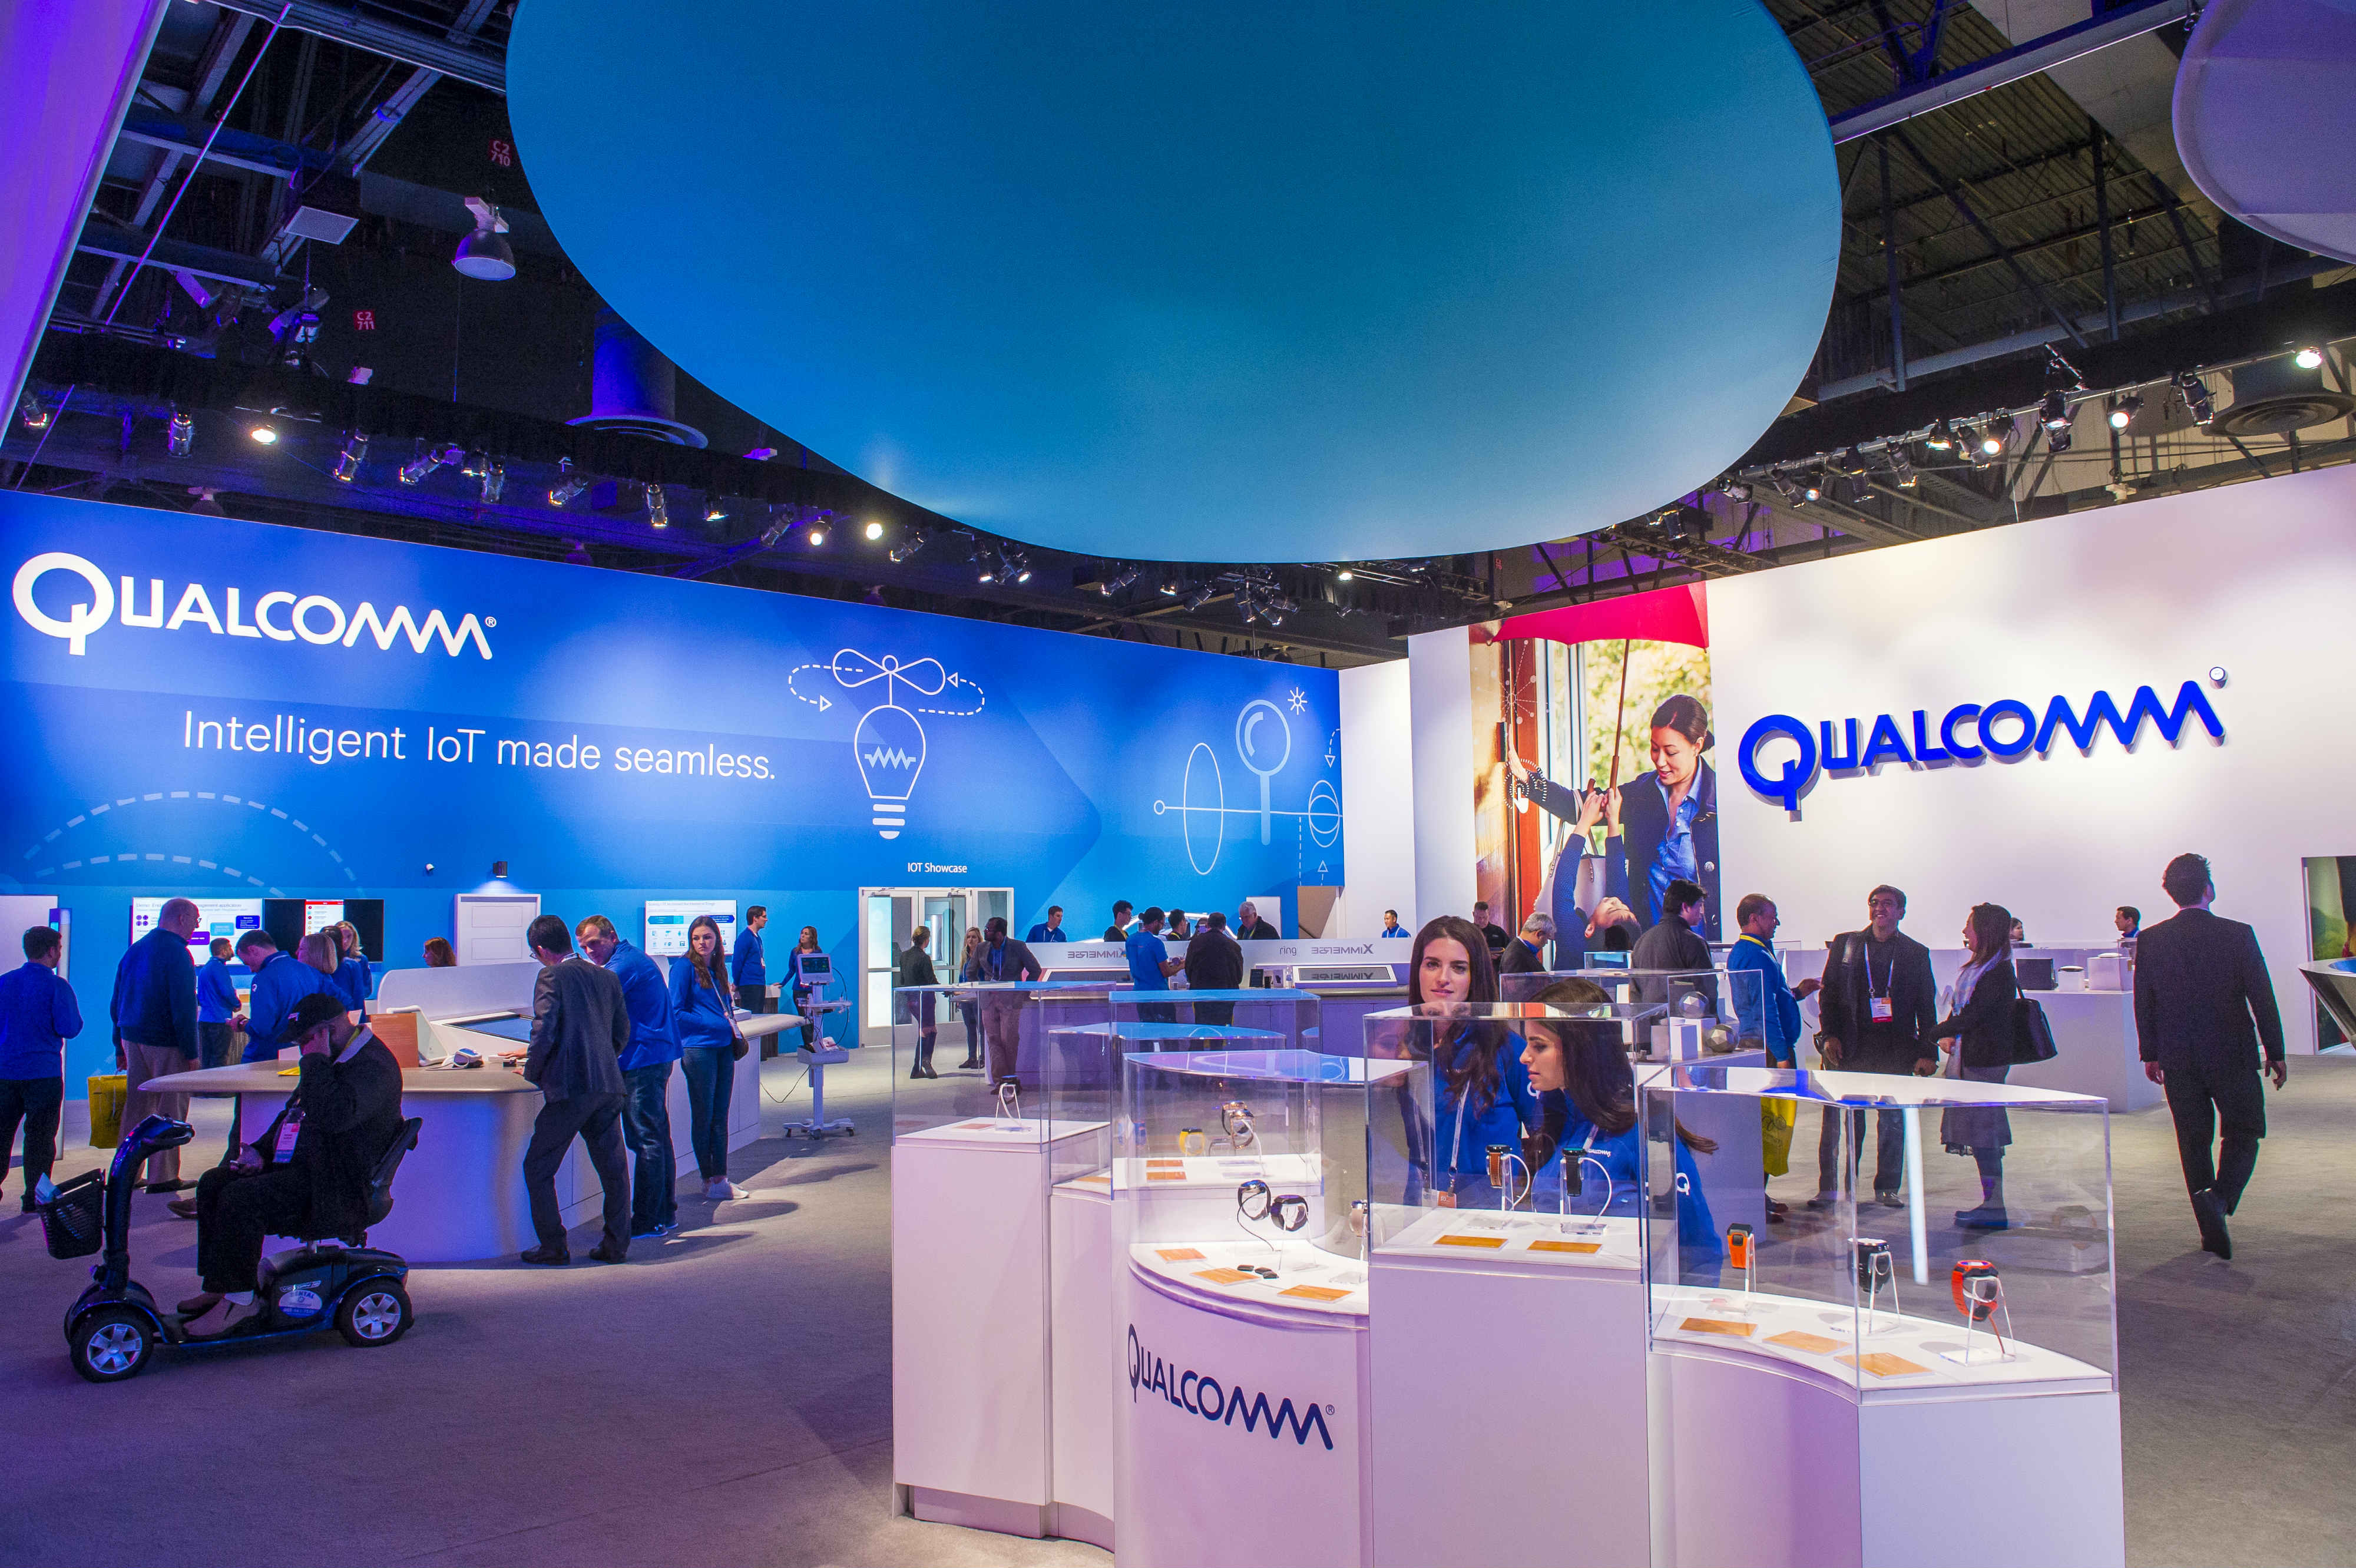 Qualcomm Introduces Next-Gen Cellular Chipset Purpose-Built